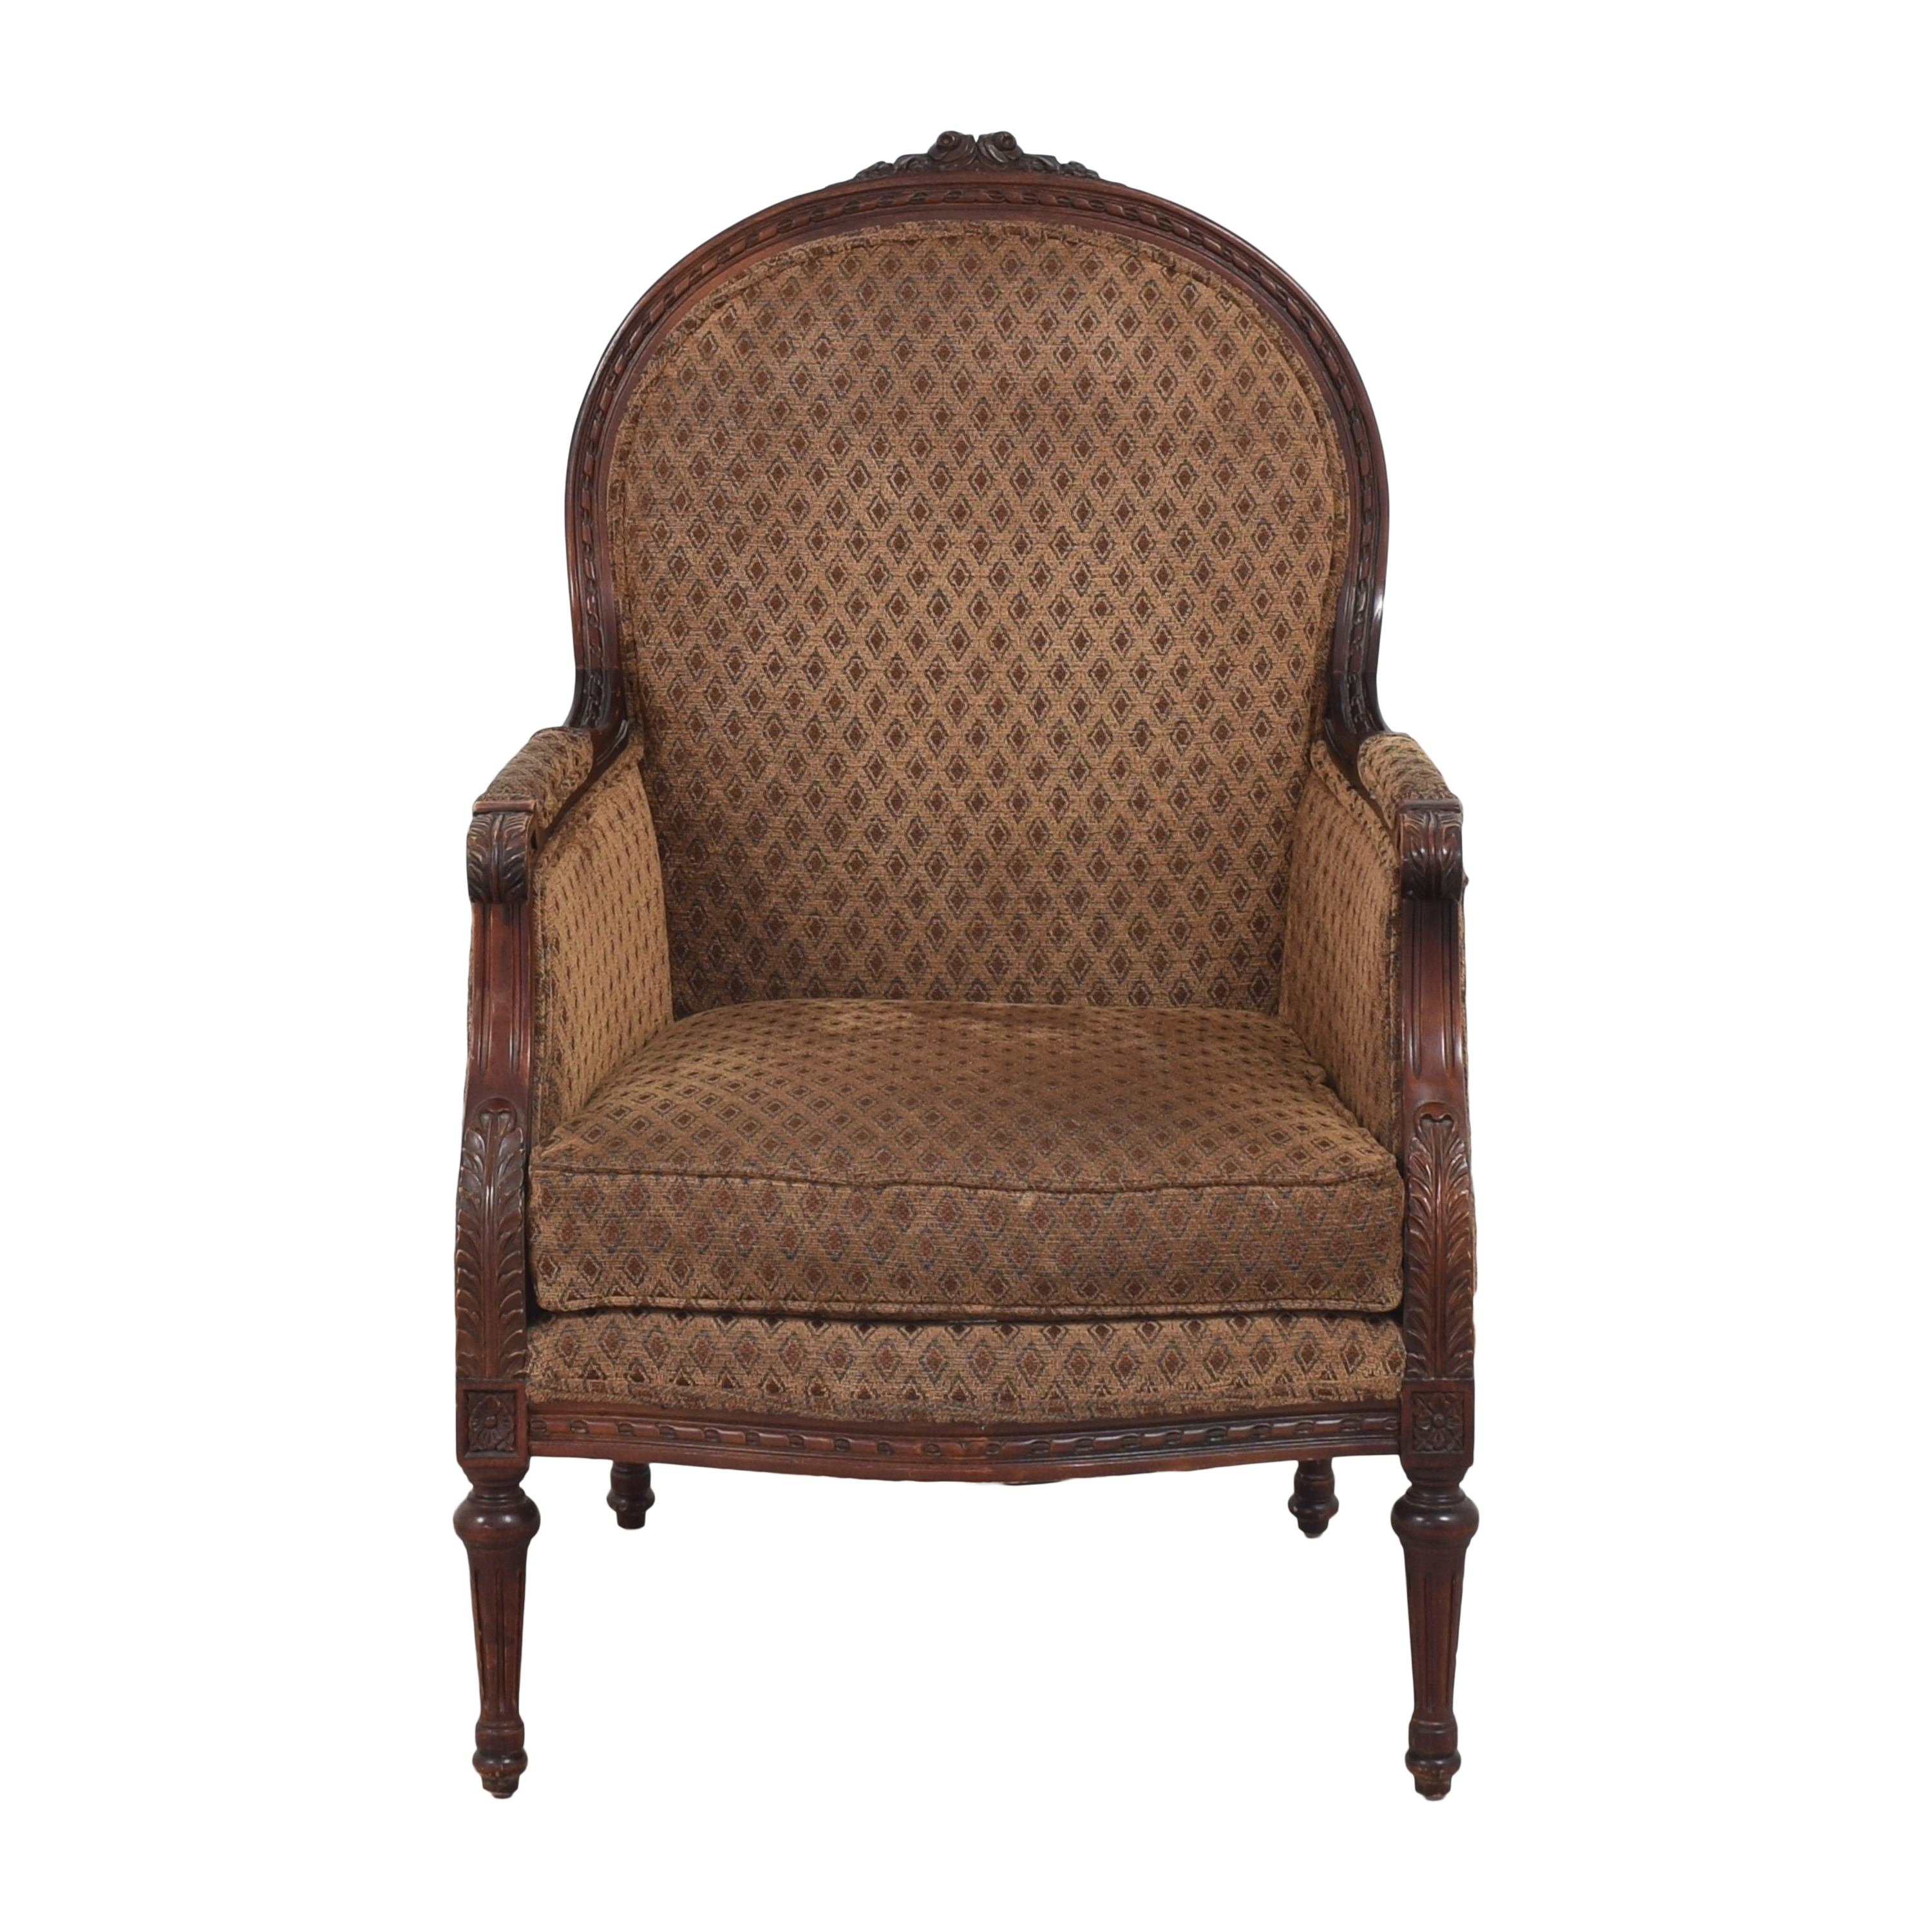 shop Thomasville Upholstered Accent Chair Thomasville Chairs